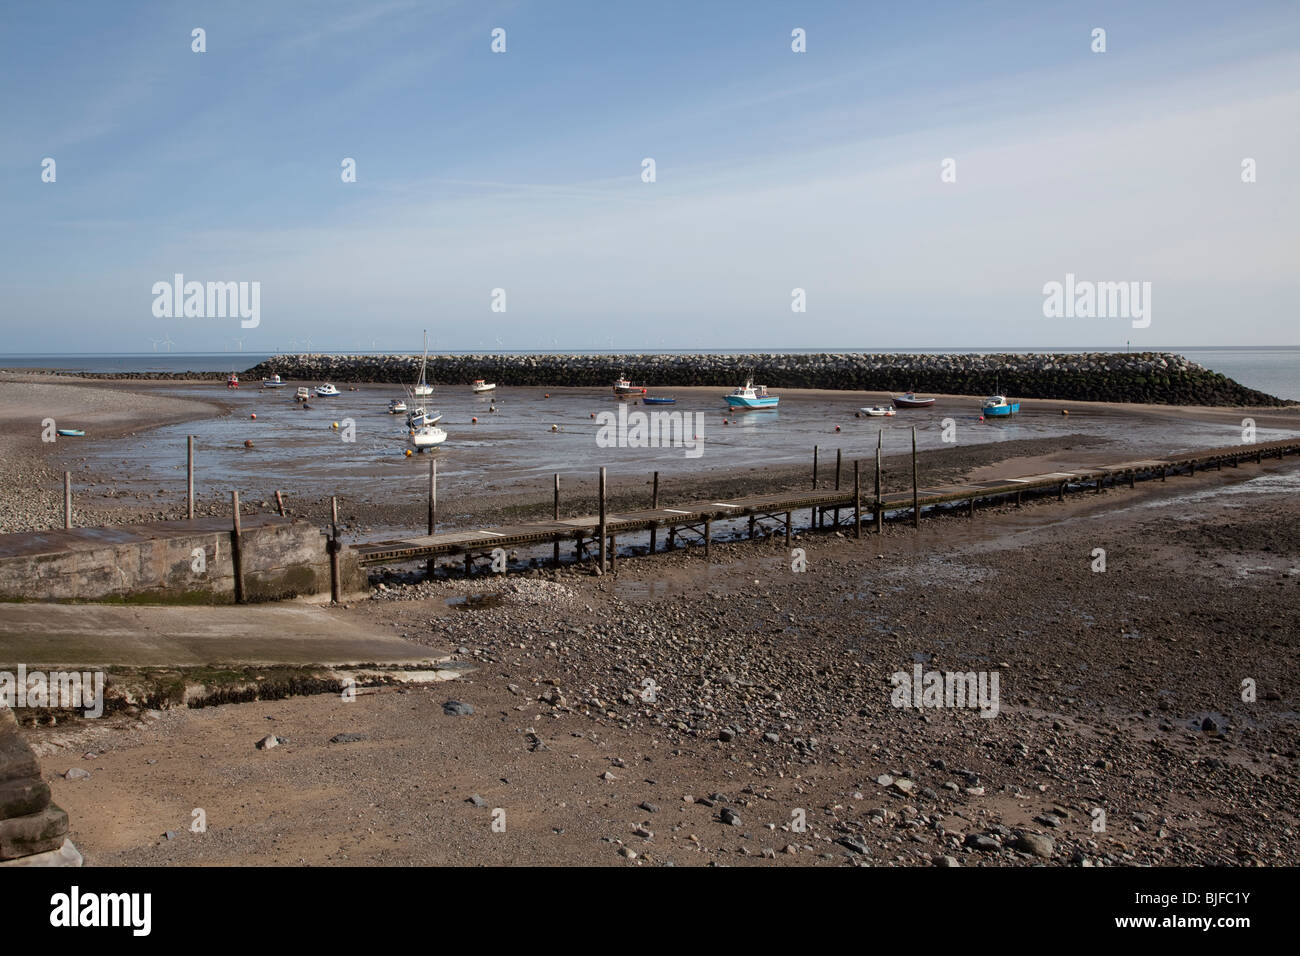 Man made harbour with small boats during low tide at Rhos on Sea holiday resort North Wales, Britain - Stock Image